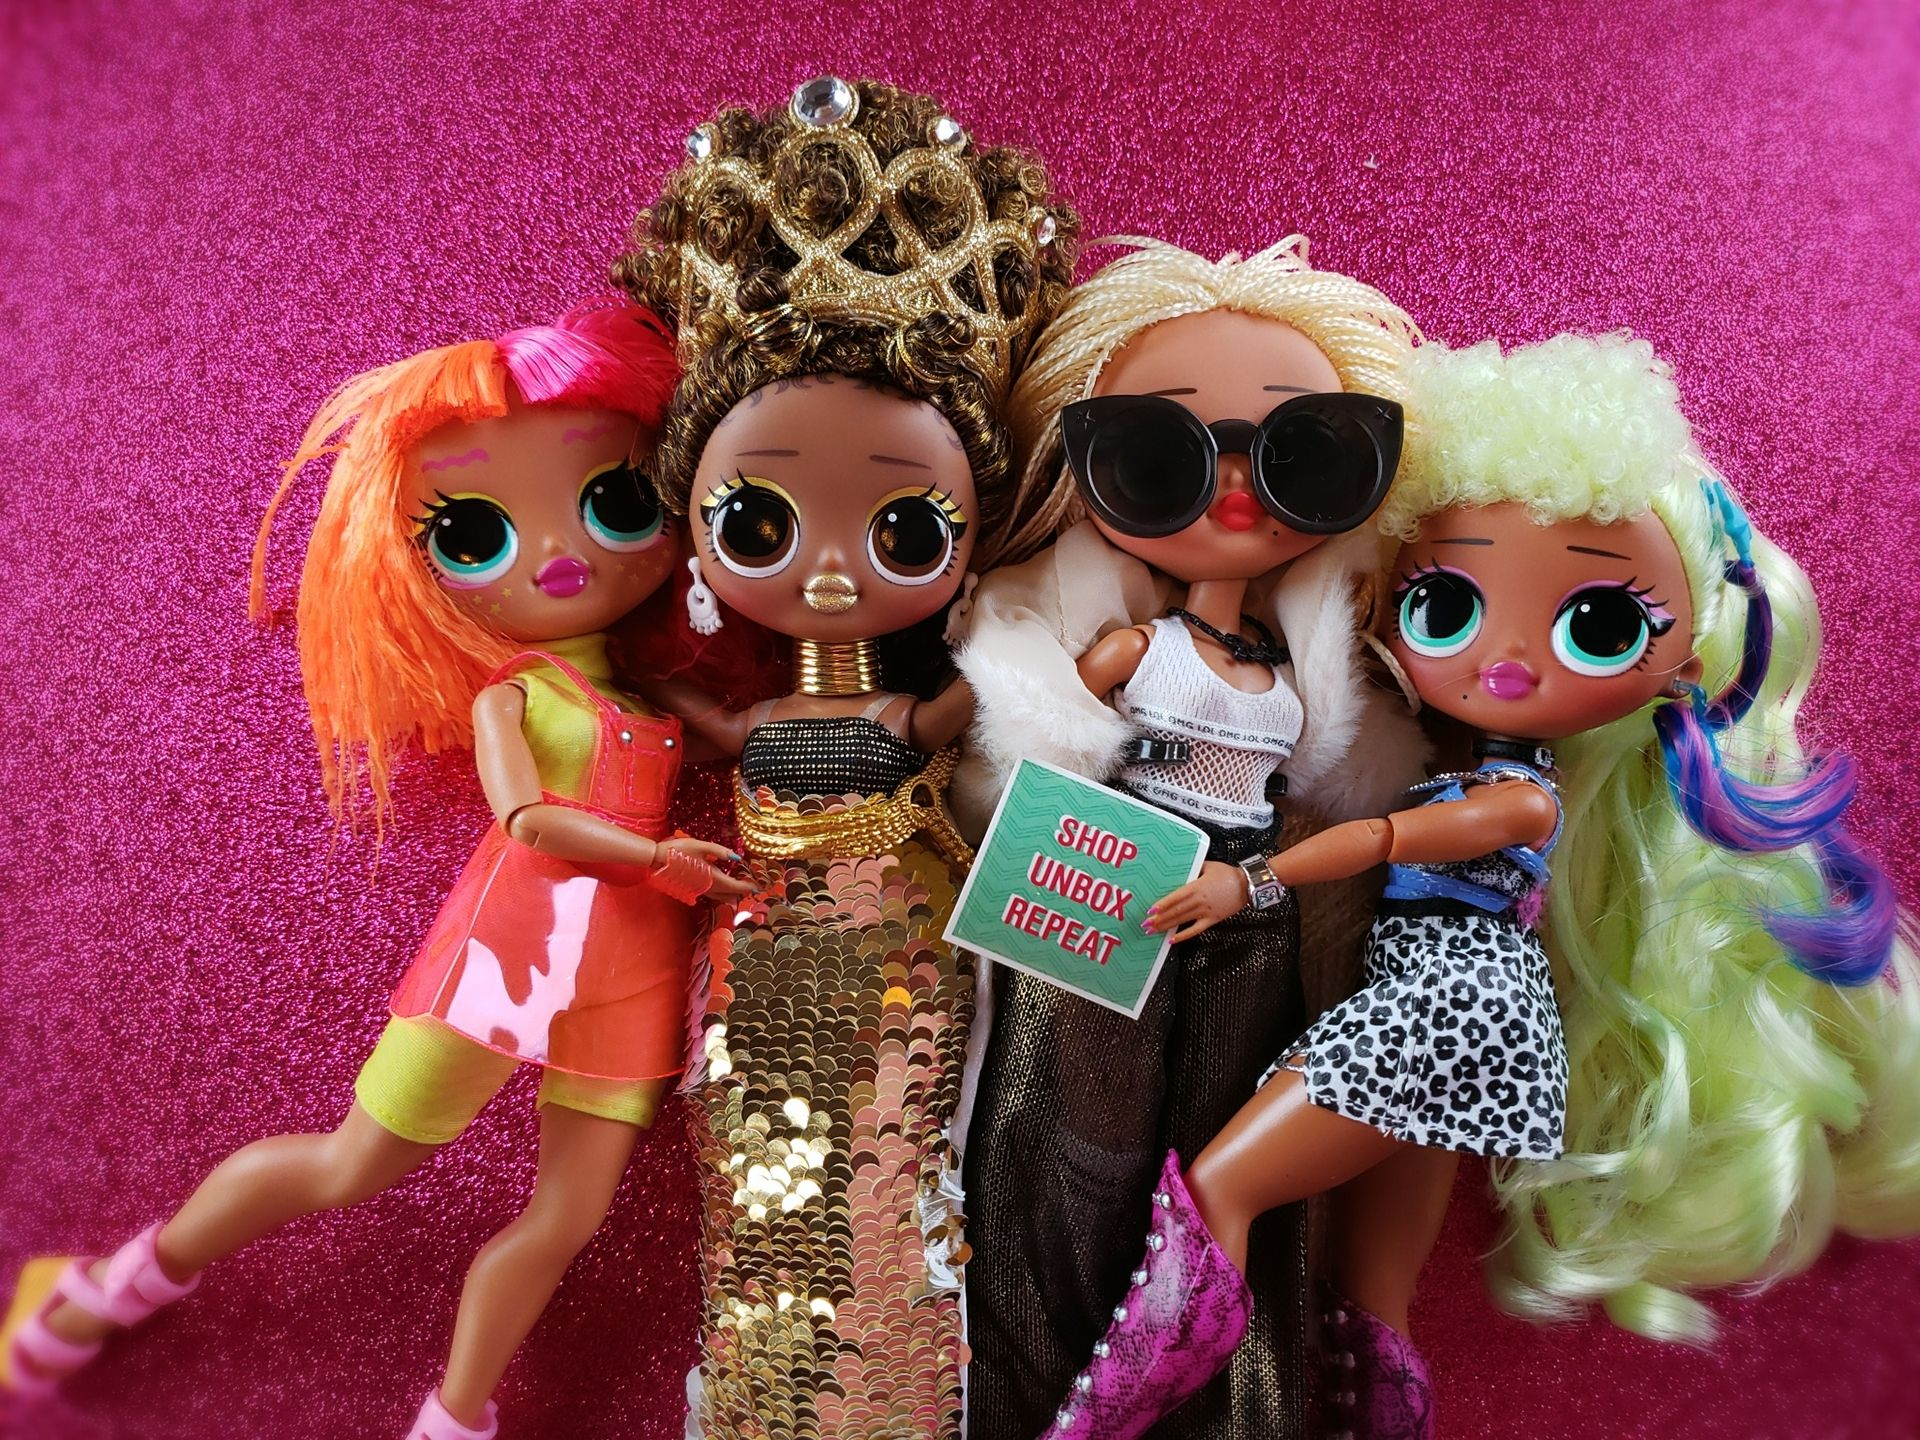 I Love My Lol Surprise Omg Fashion Dolls I Did Makeovers To